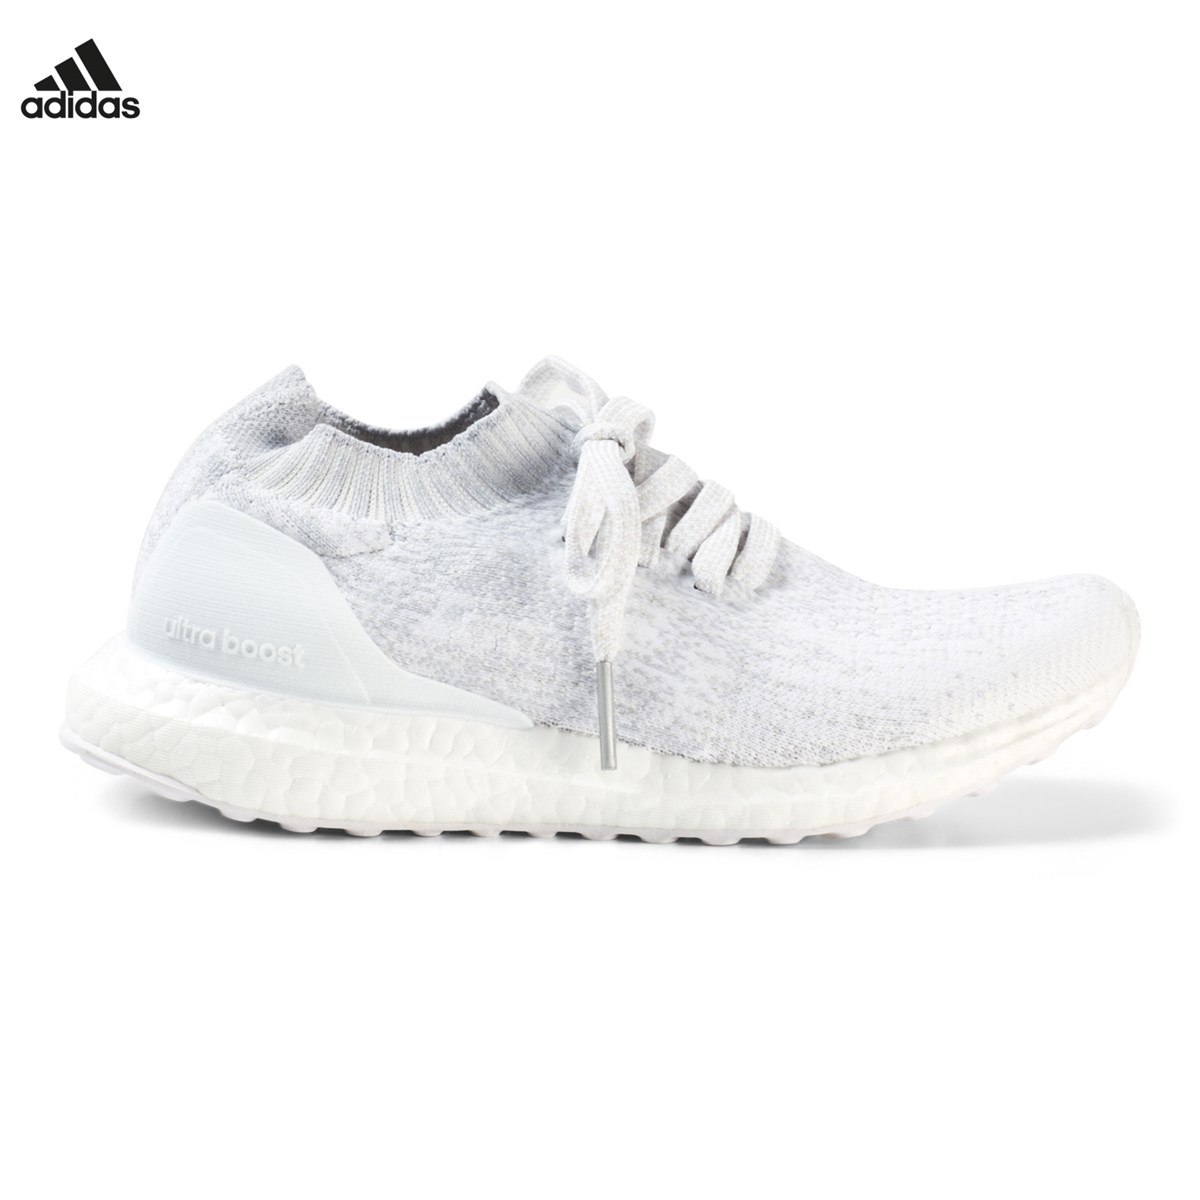 570932bc6b49a adidas Performance - UltraBoost Uncaged Junior Running Shoes White -  Babyshop.com